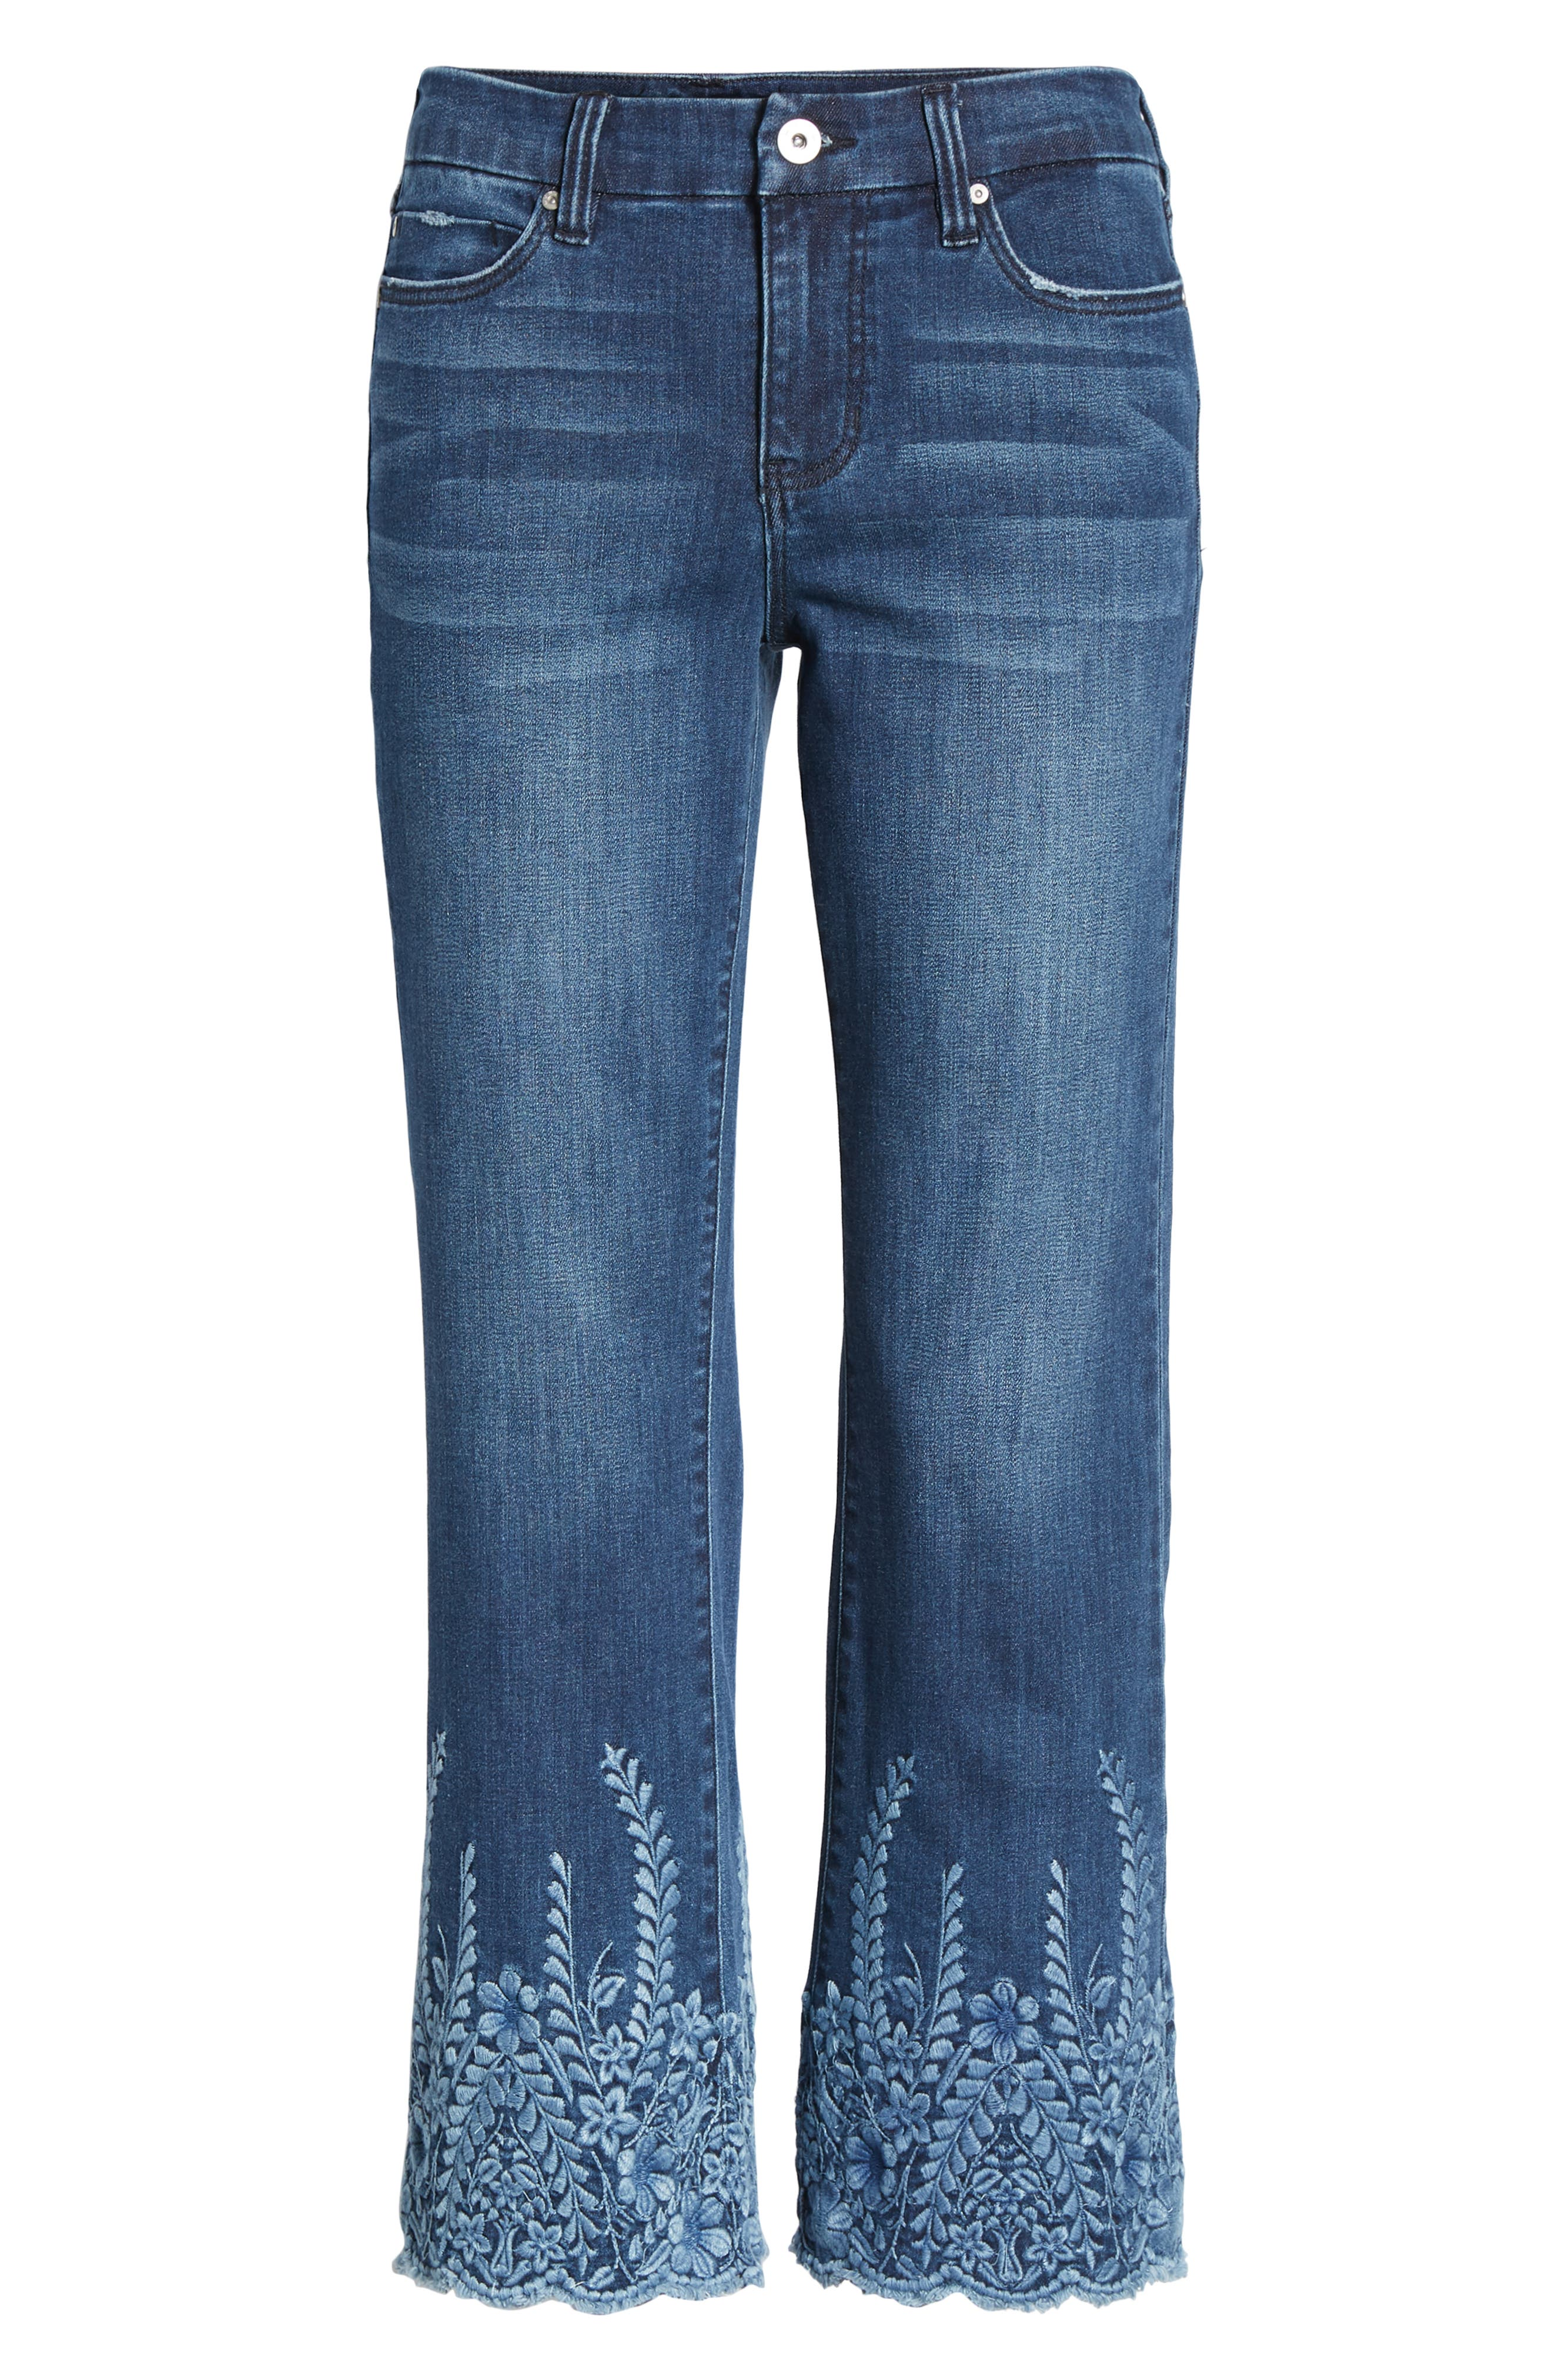 LVPL by Liverpool Coco Embroidered Hem Crop Jeans,                             Alternate thumbnail 7, color,                             Willow Wash